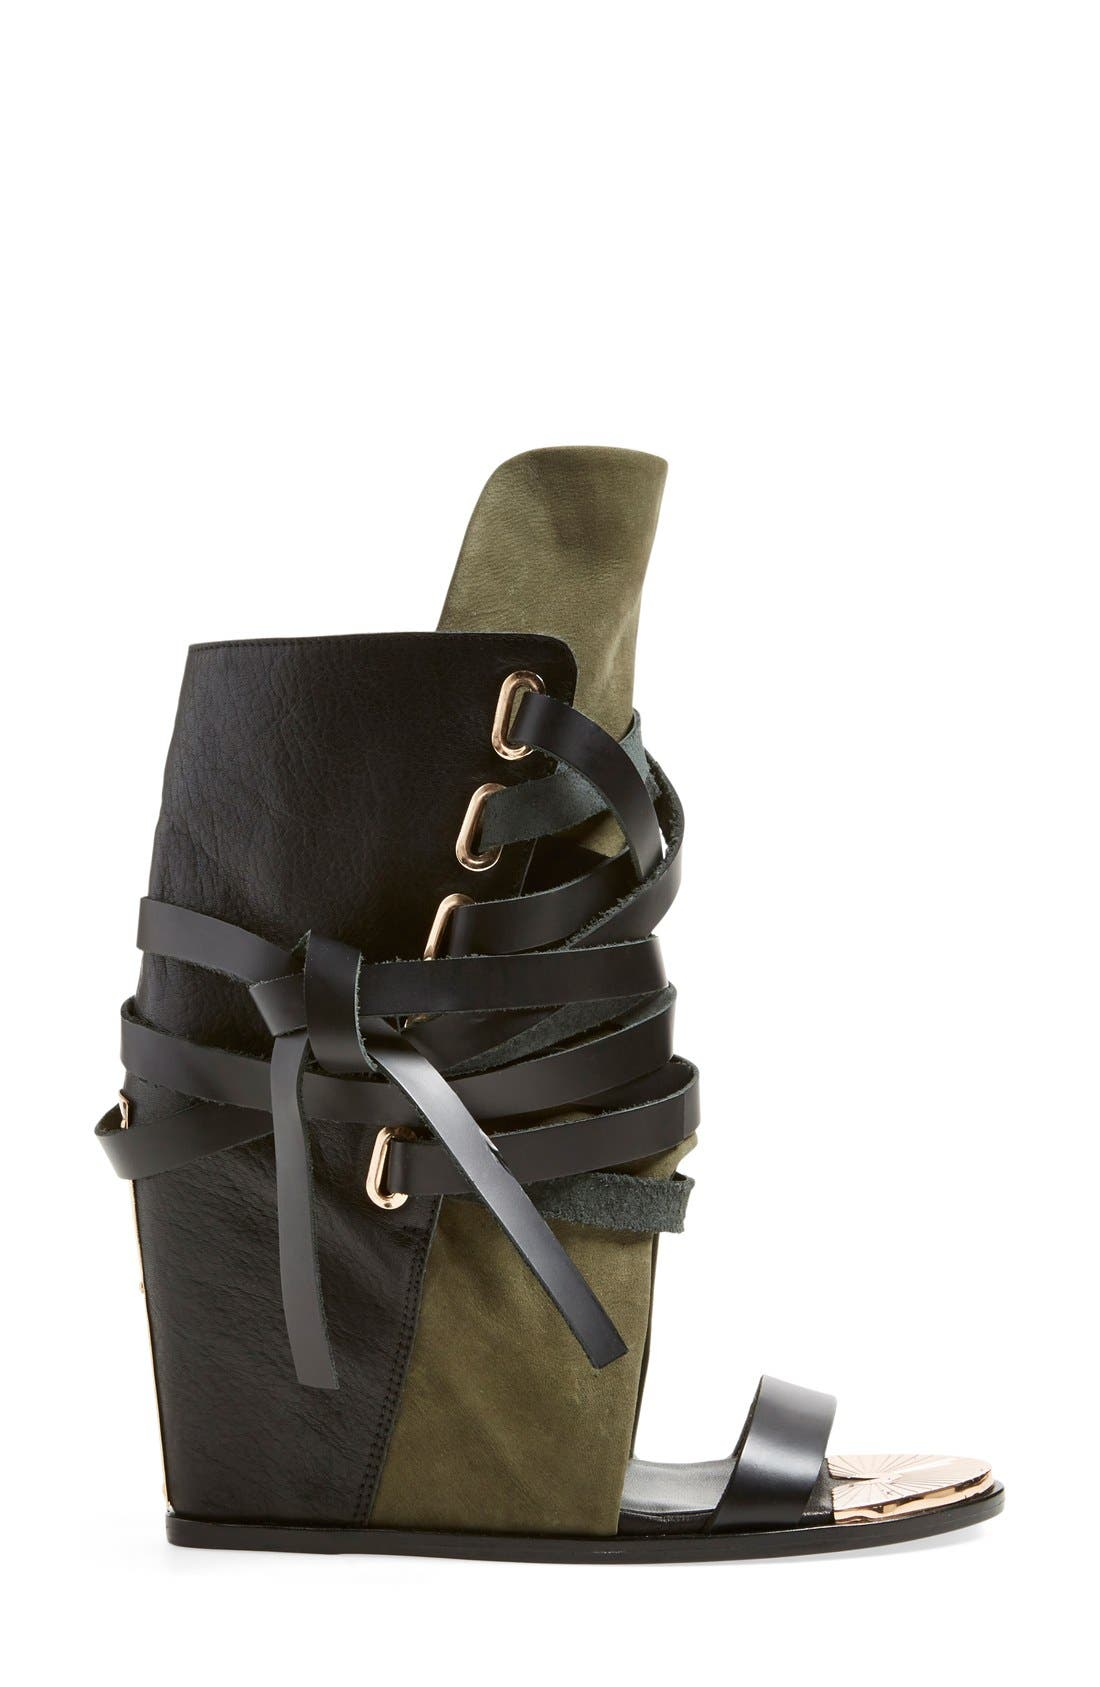 'Mount' Wedge Sandal,                             Alternate thumbnail 4, color,                             Black/ Cargo